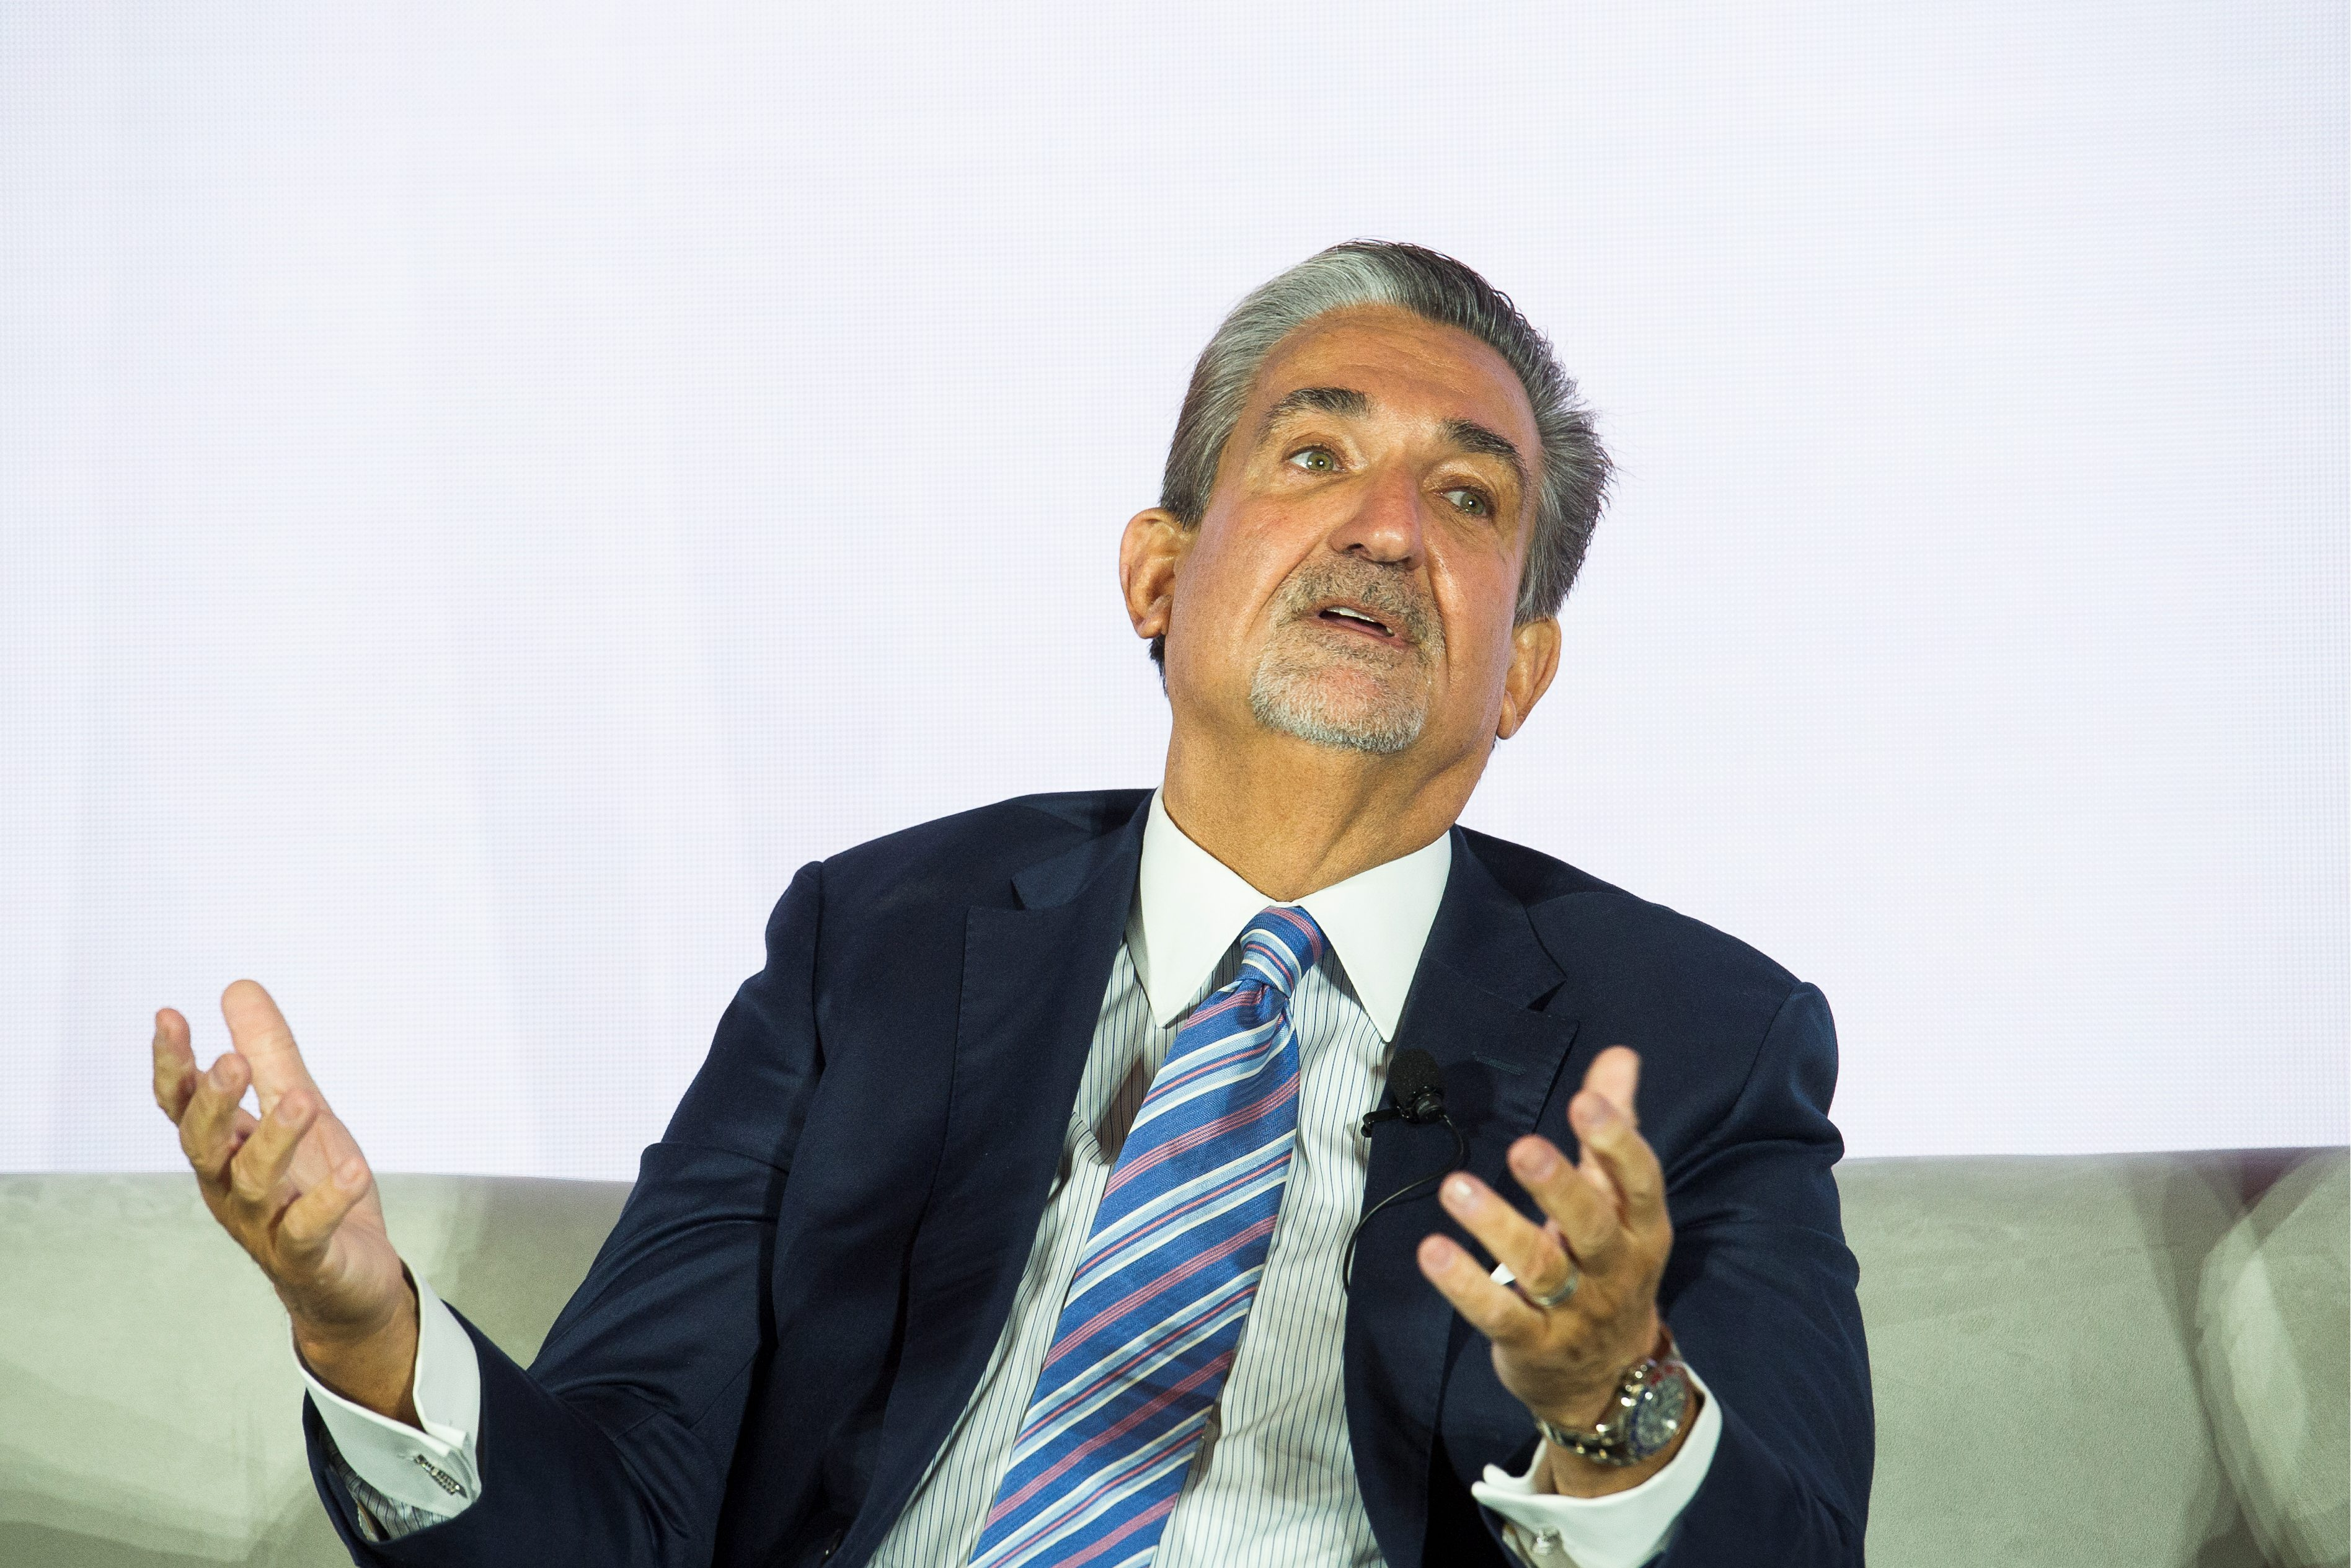 Ted Leonsis, D.C. anxious to cash in on sports gambling